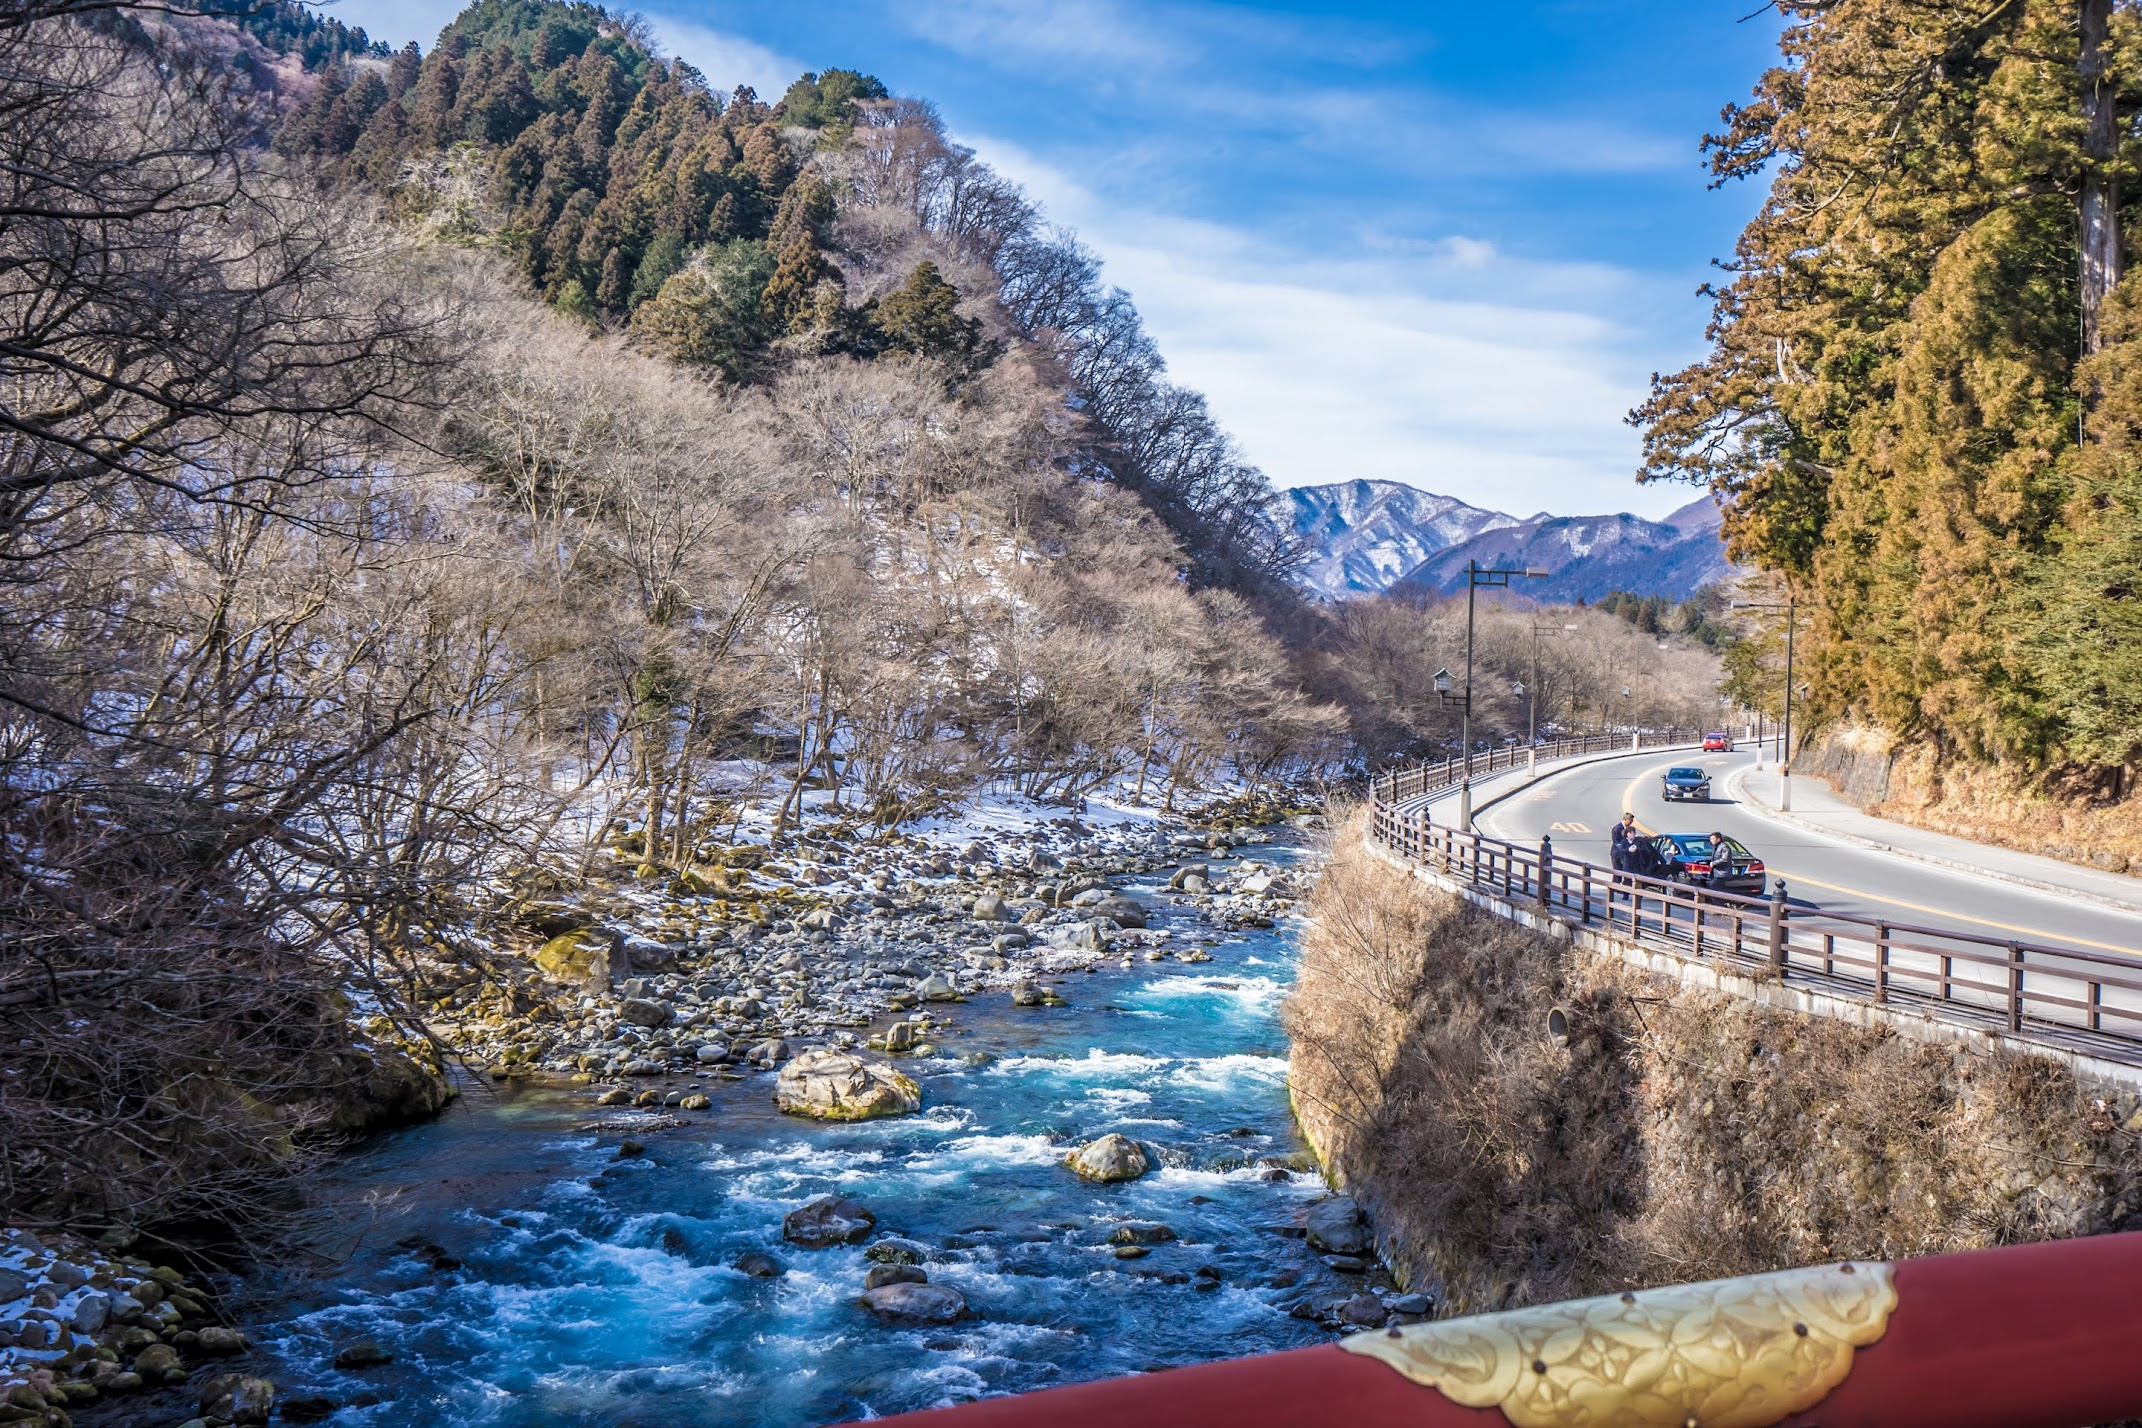 Nikko Shinkyo Bridge3